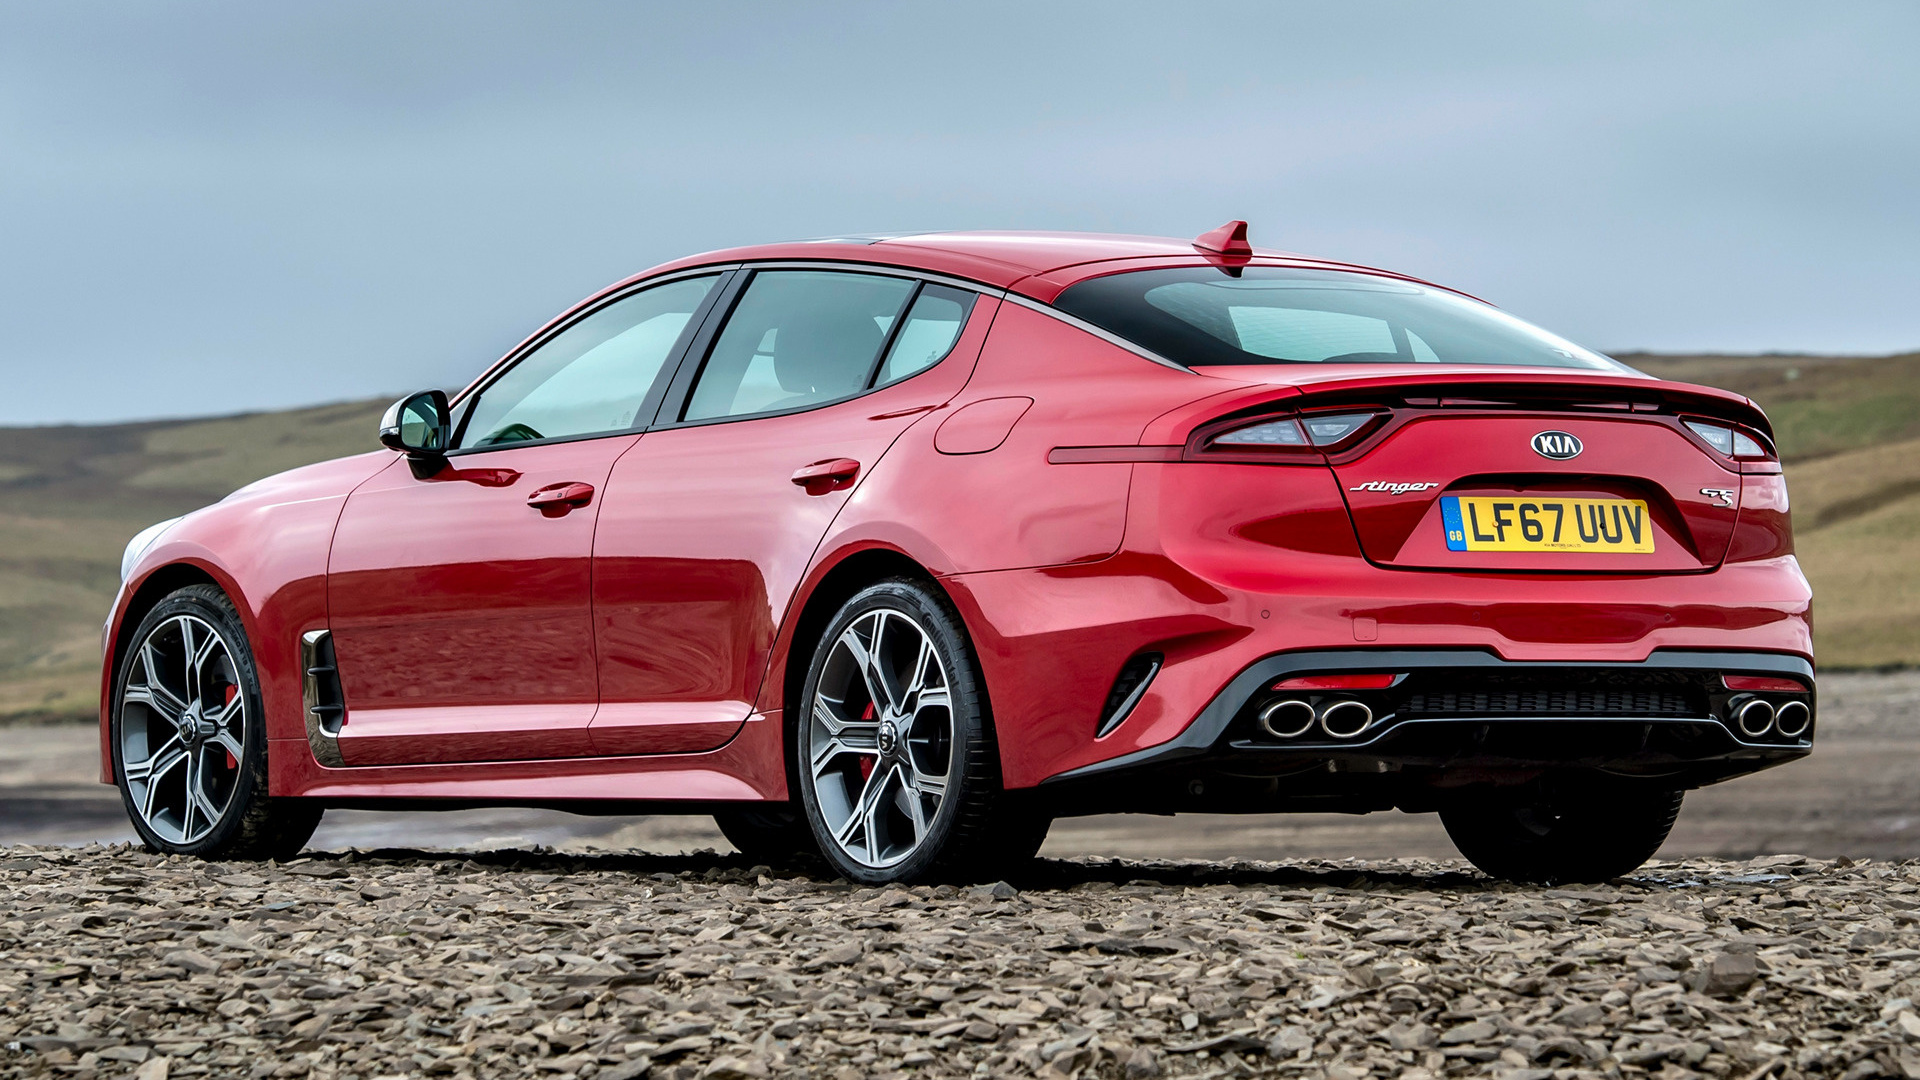 2017 Kia Stinger Gt S Uk Wallpapers And Hd Images